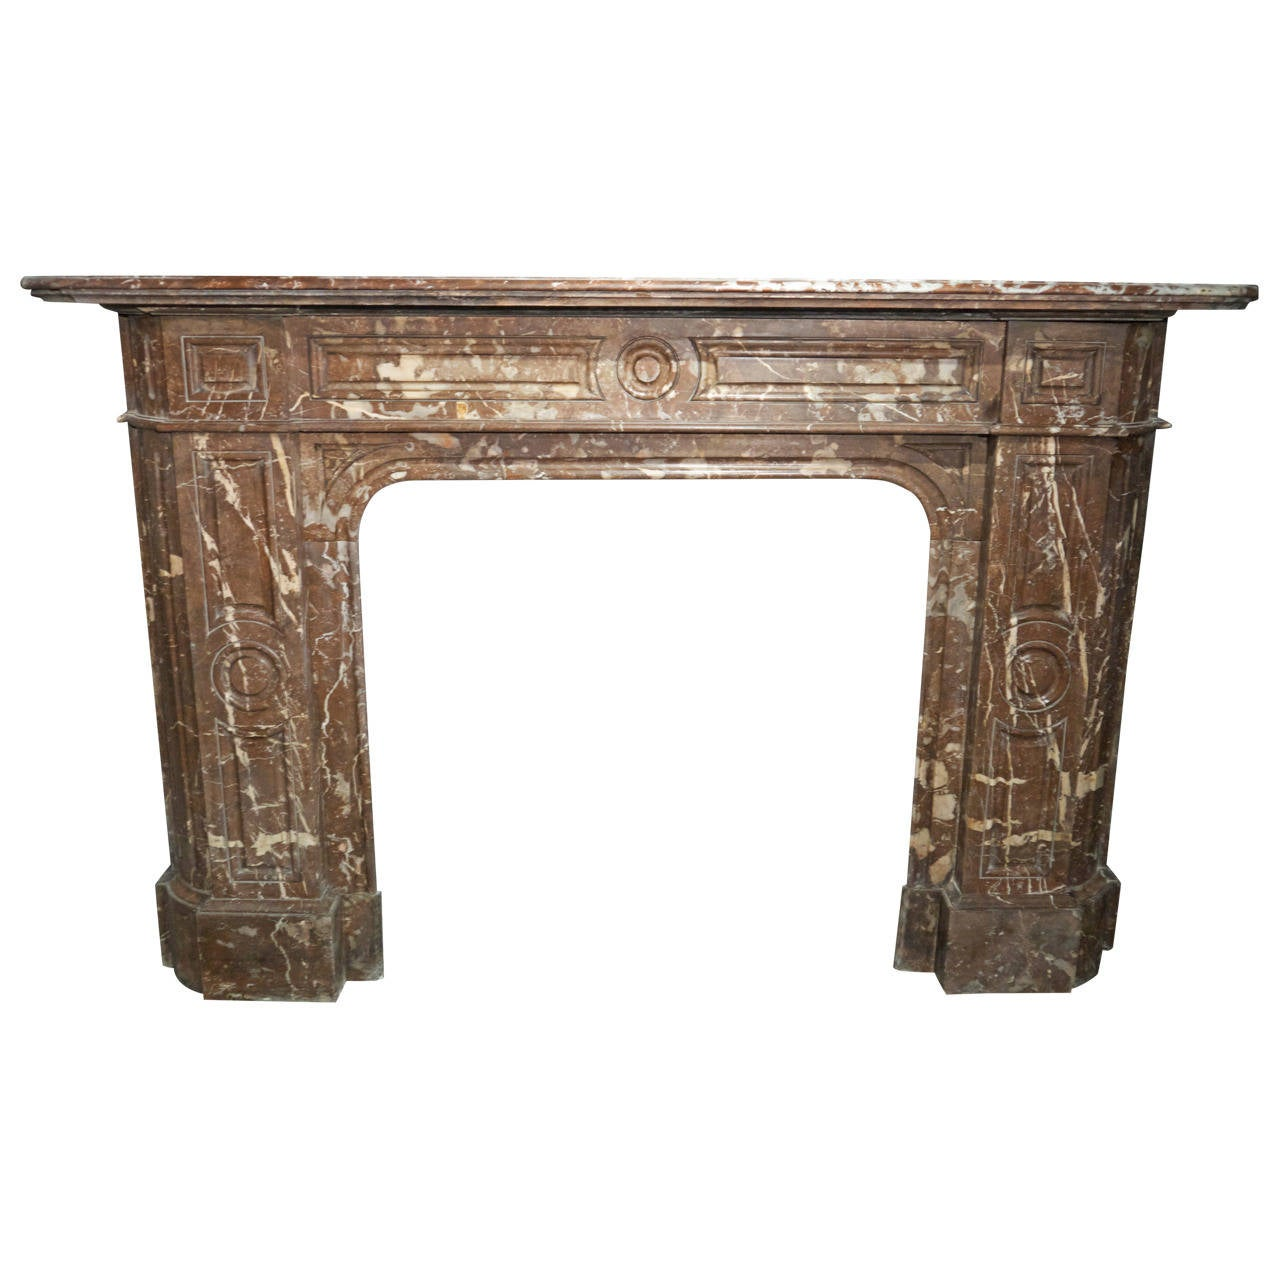 Victorian antique Rouge Royale Marble Fireplace Surround